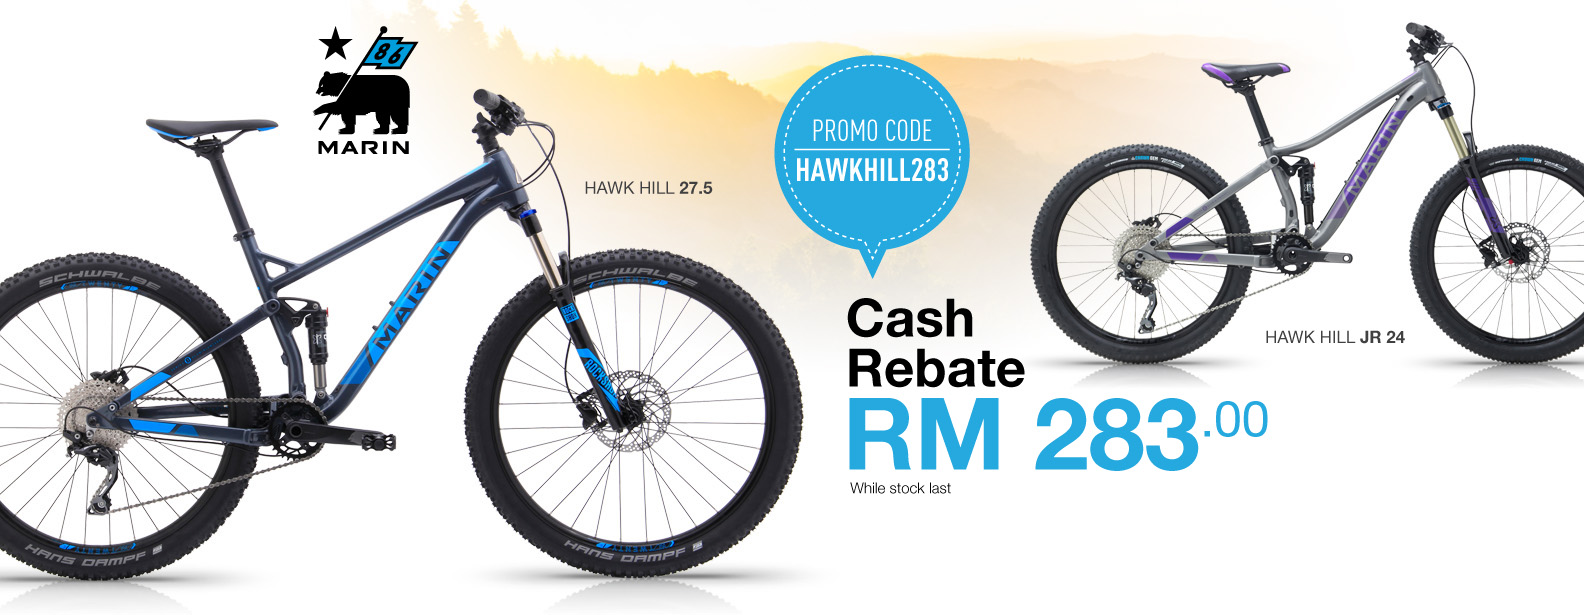 Marin Hawk Hill Cash Rebate